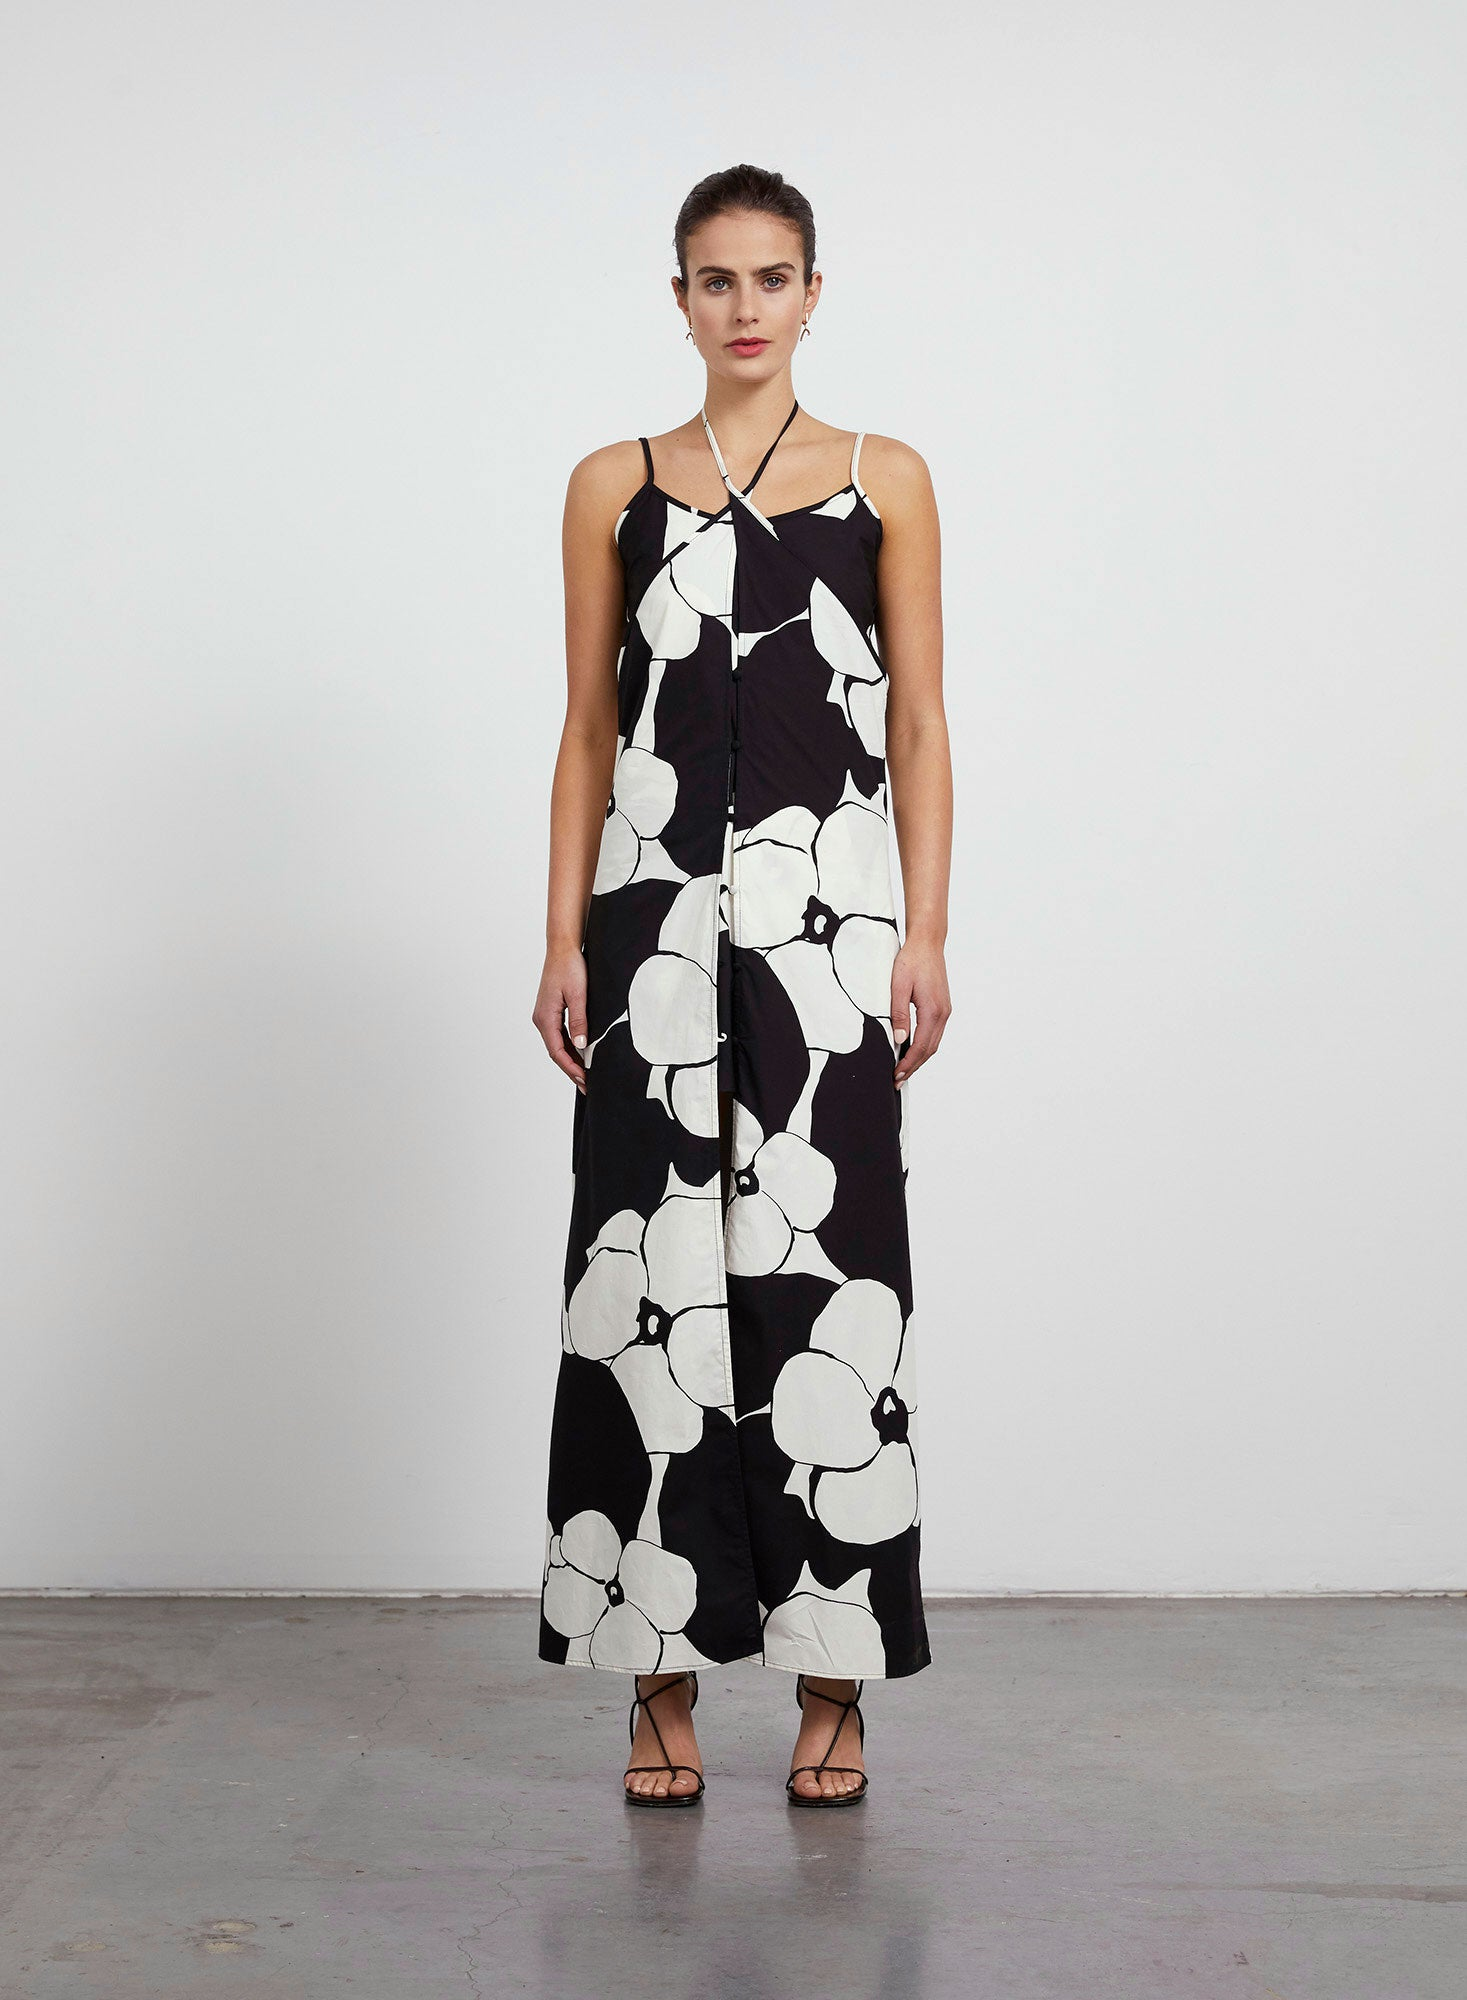 Miranda Layered Slip Dress - Floral Print